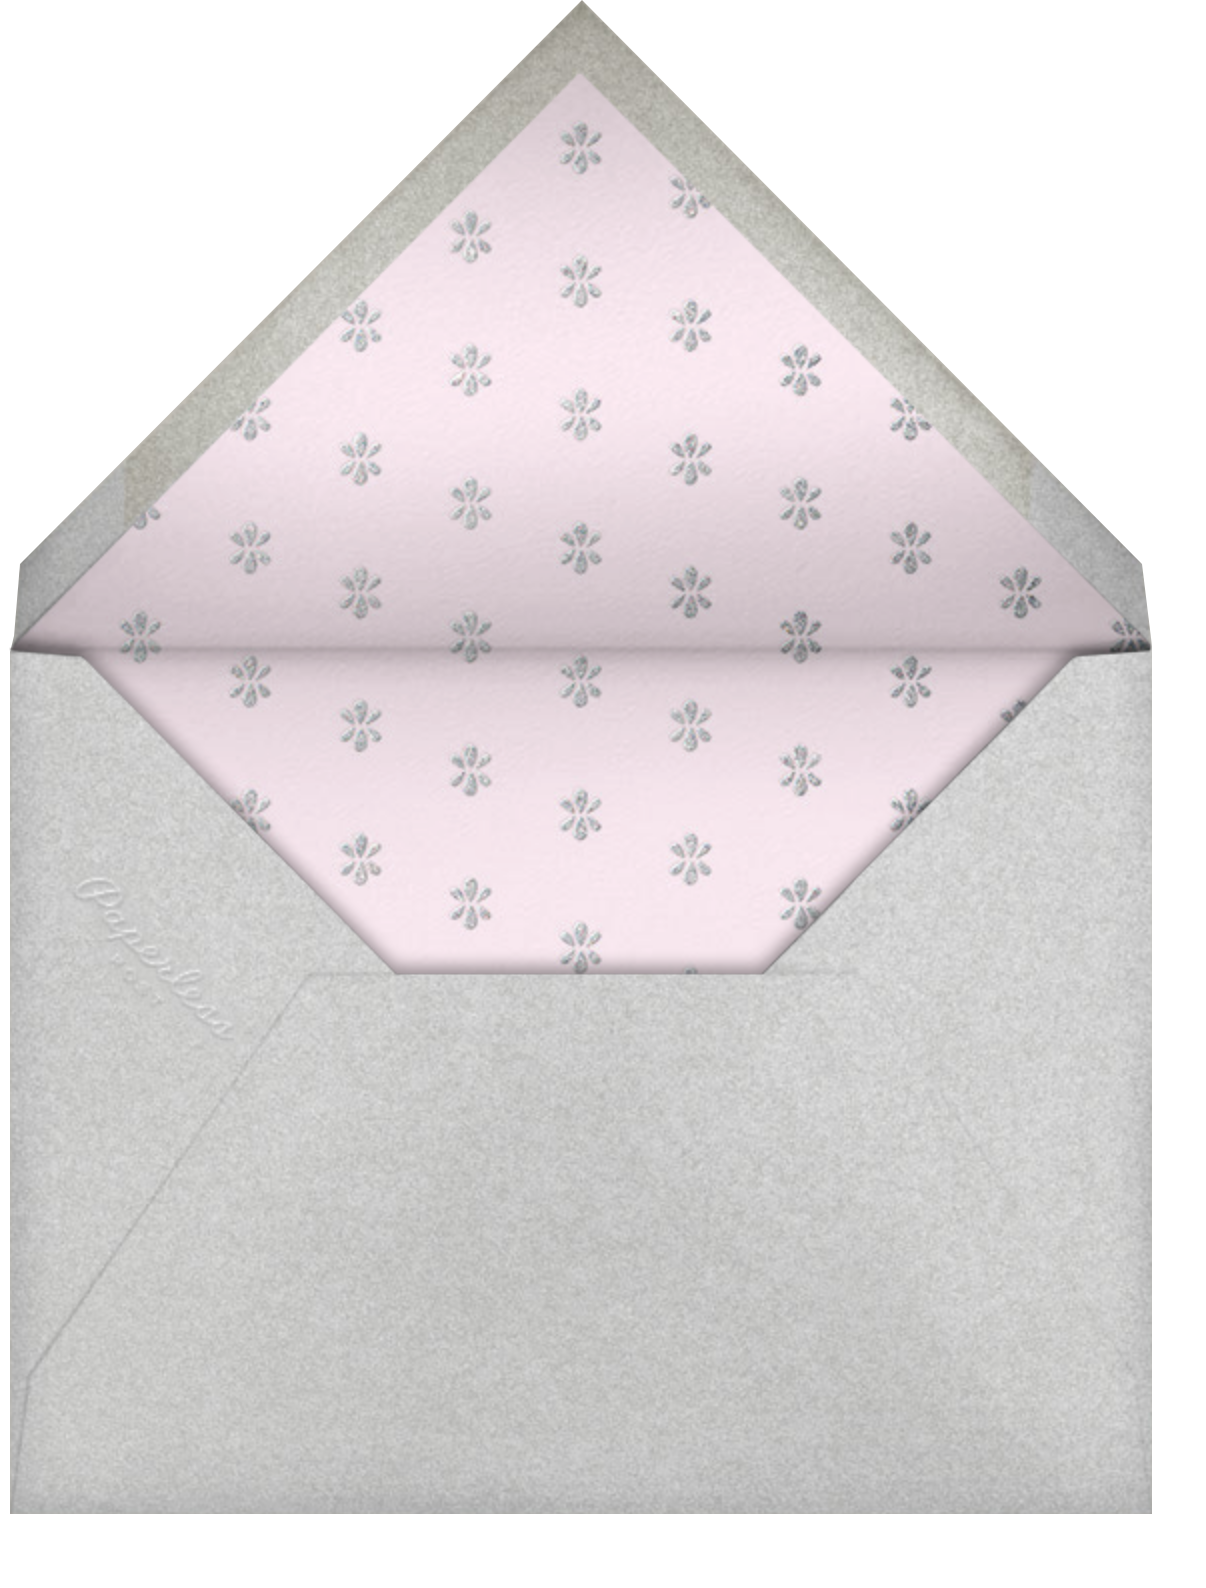 Ornate Occasion - Sweet Pea - Paperless Post - Envelope